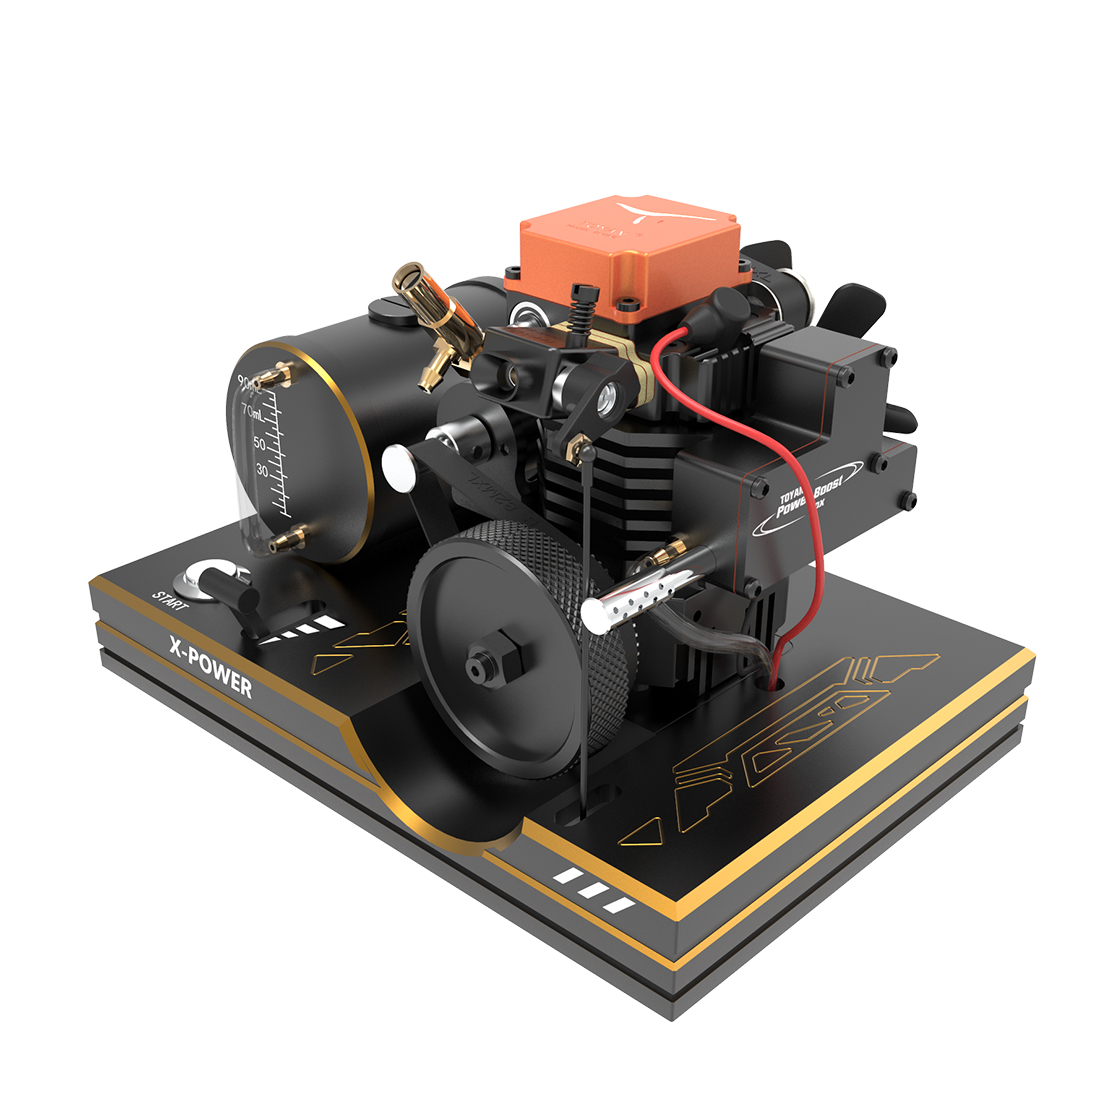 Toyan 4-Stroke Methanol FS-S100A DIY Engine Model Set For 1:10 1:12 1:14 Car Ship Airplane Model Experiment Toy For 14+